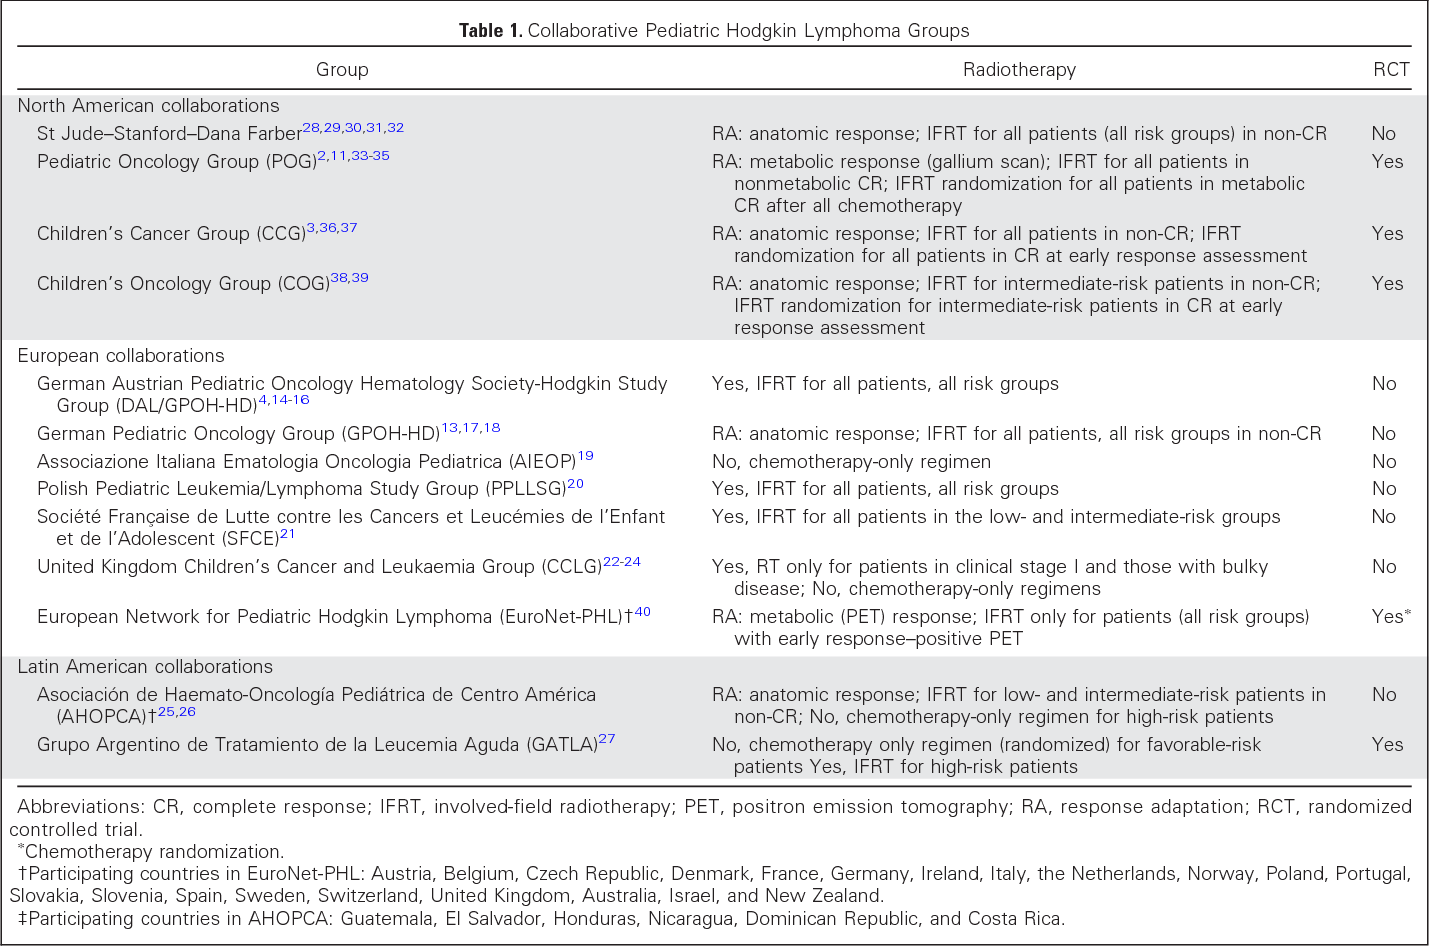 Table 1 from Pediatric Hodgkin Lymphoma  - Semantic Scholar